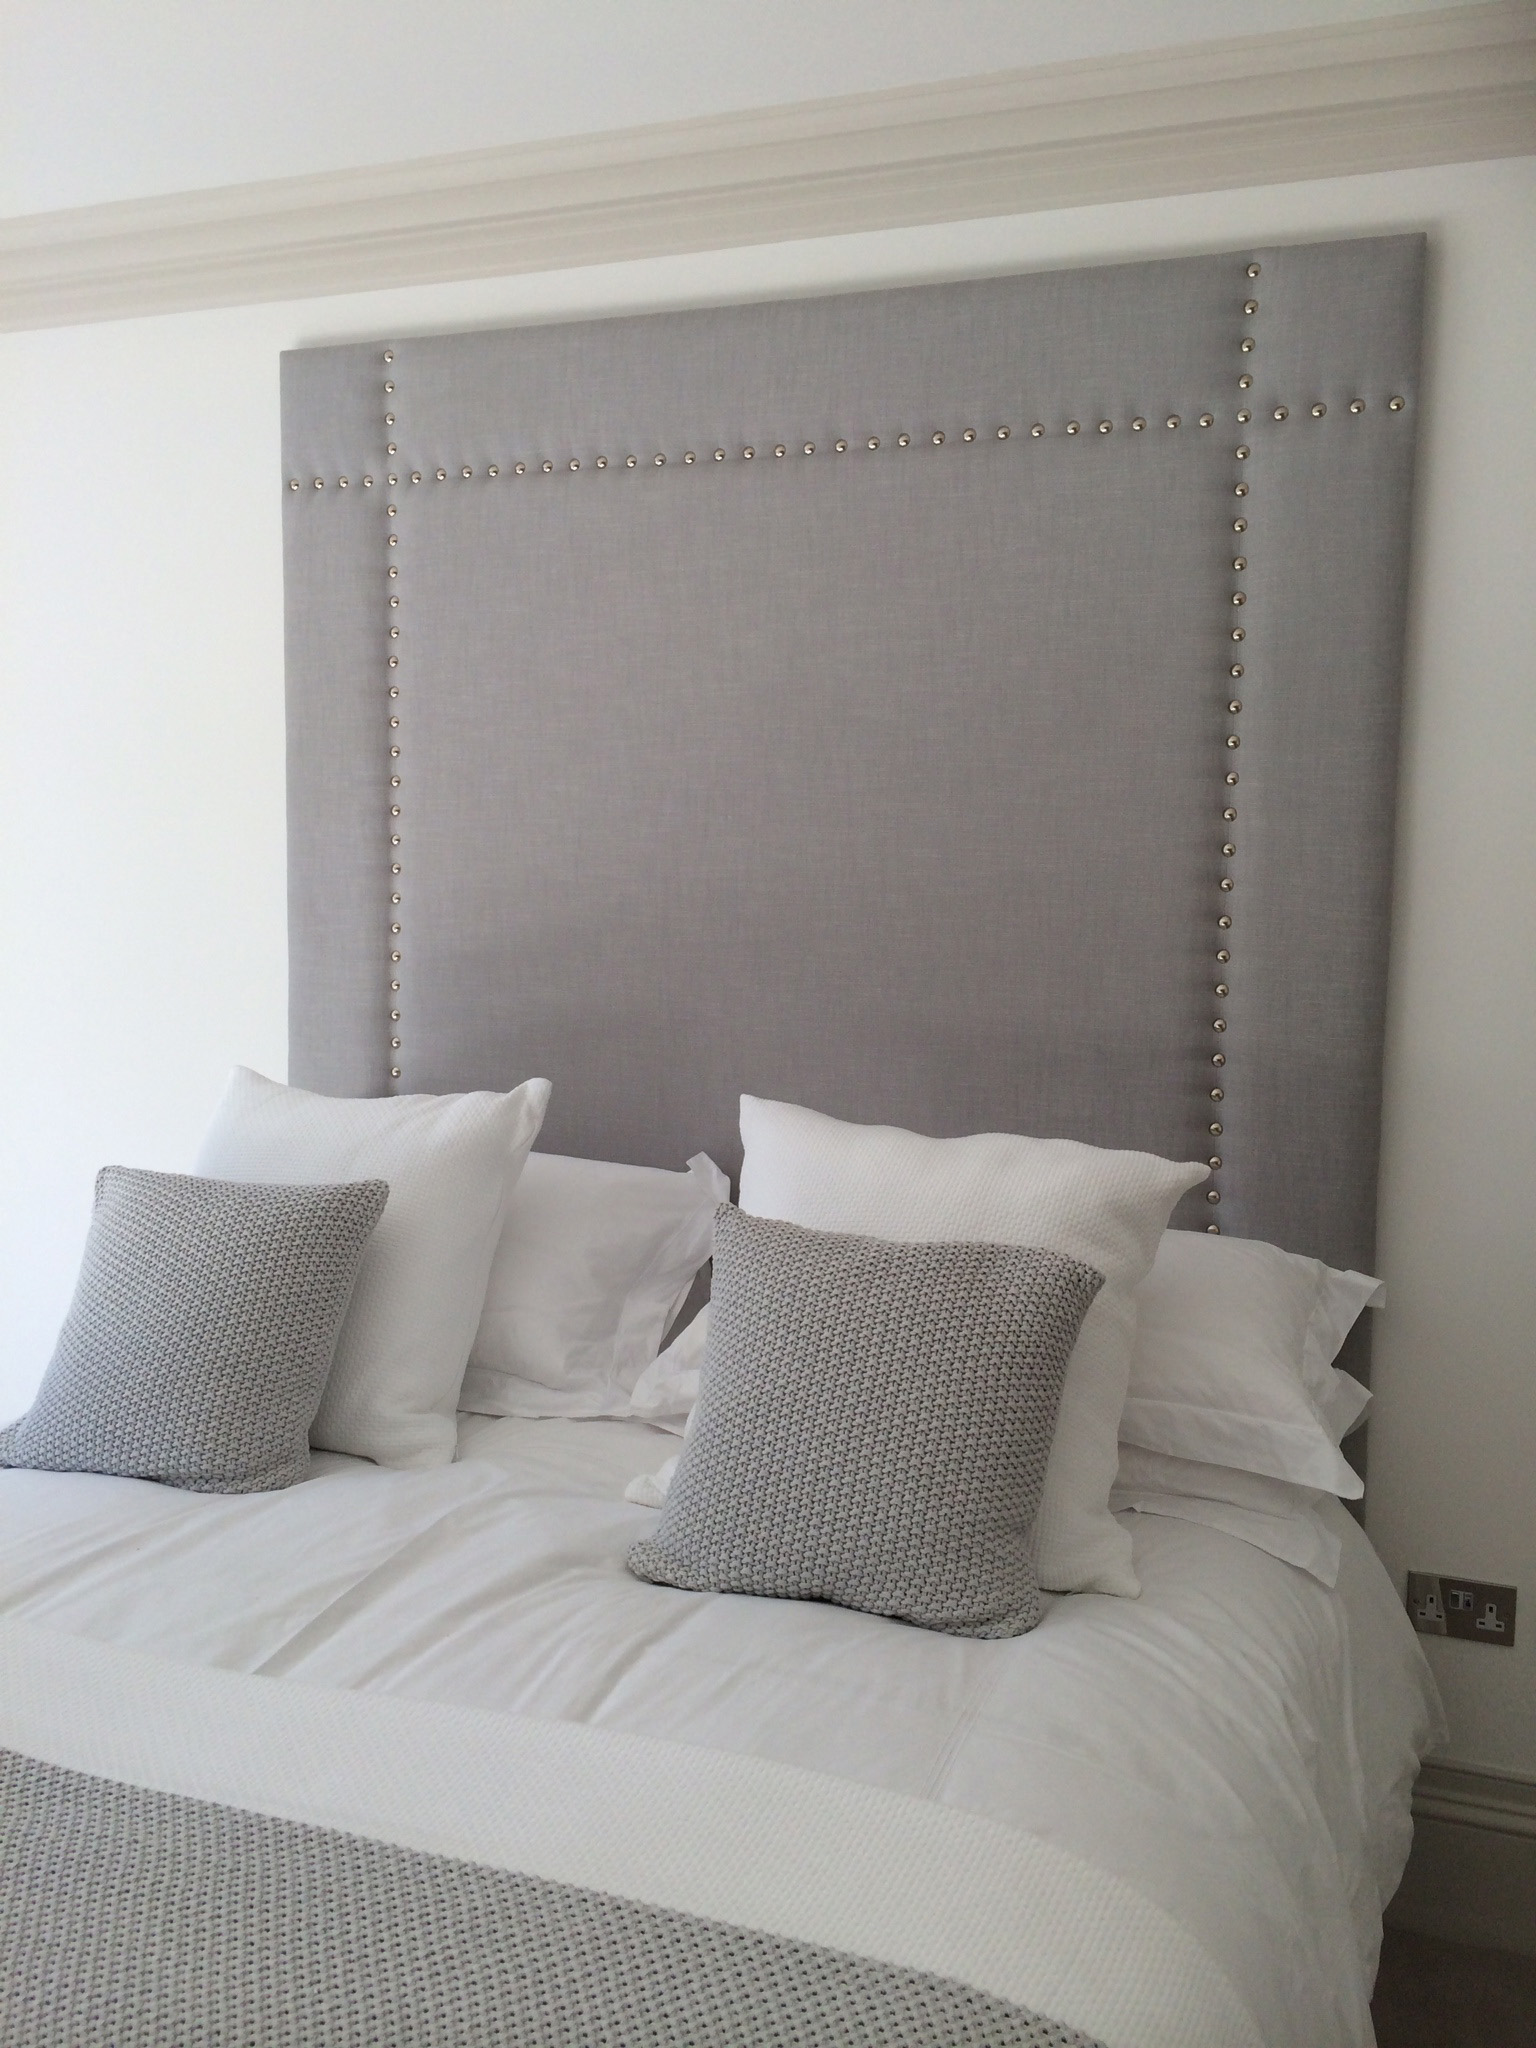 Panelled Studded Headboard